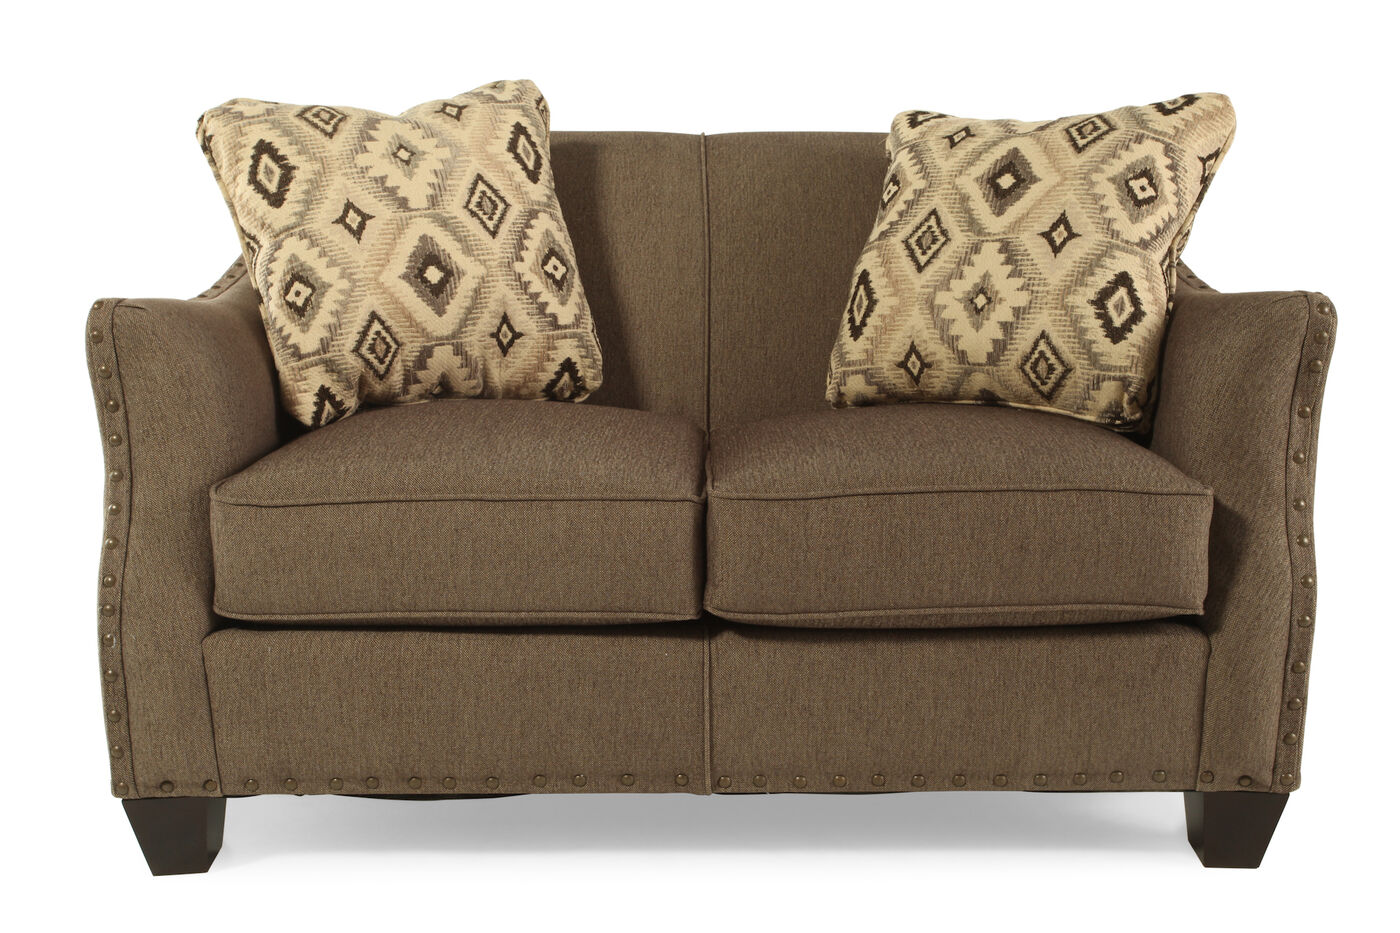 Broyhill Allison Loveseat Mathis Brothers Furniture